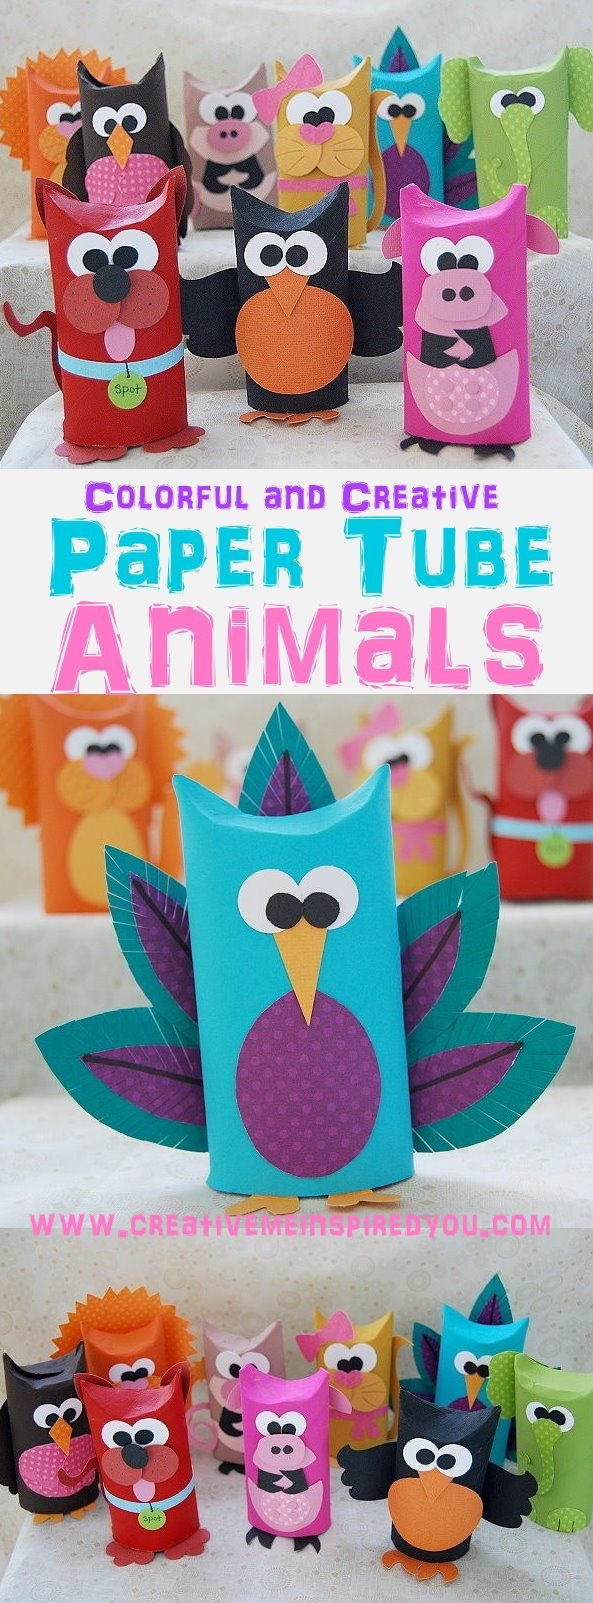 226 best crafts toilet paper rolls images on pinterest toilet toilet roll animals recycled crafts jeuxipadfo Choice Image